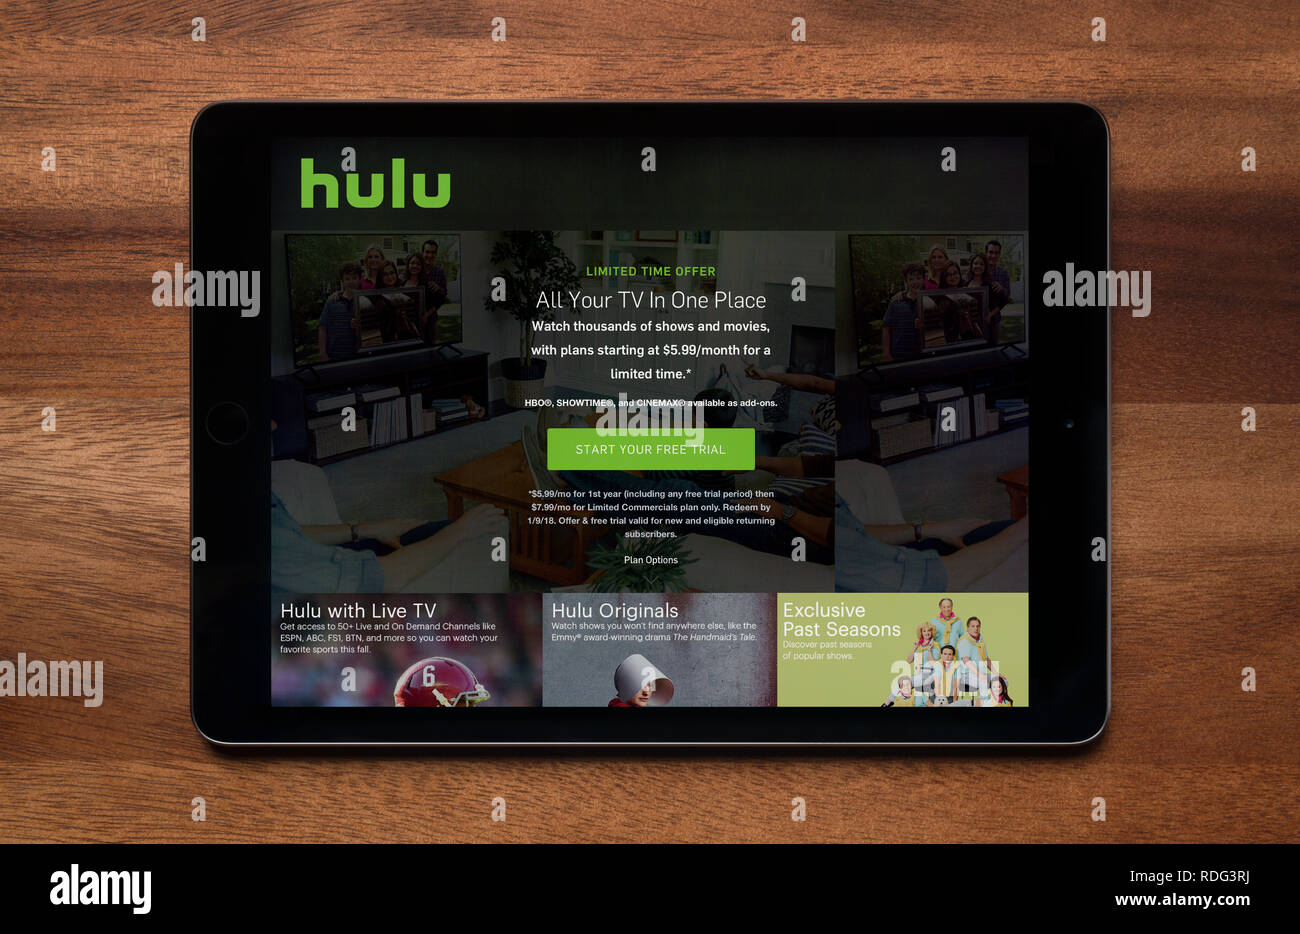 The website of Hulu is seen on an iPad tablet, which is resting on a wooden table (Editorial use only). - Stock Image